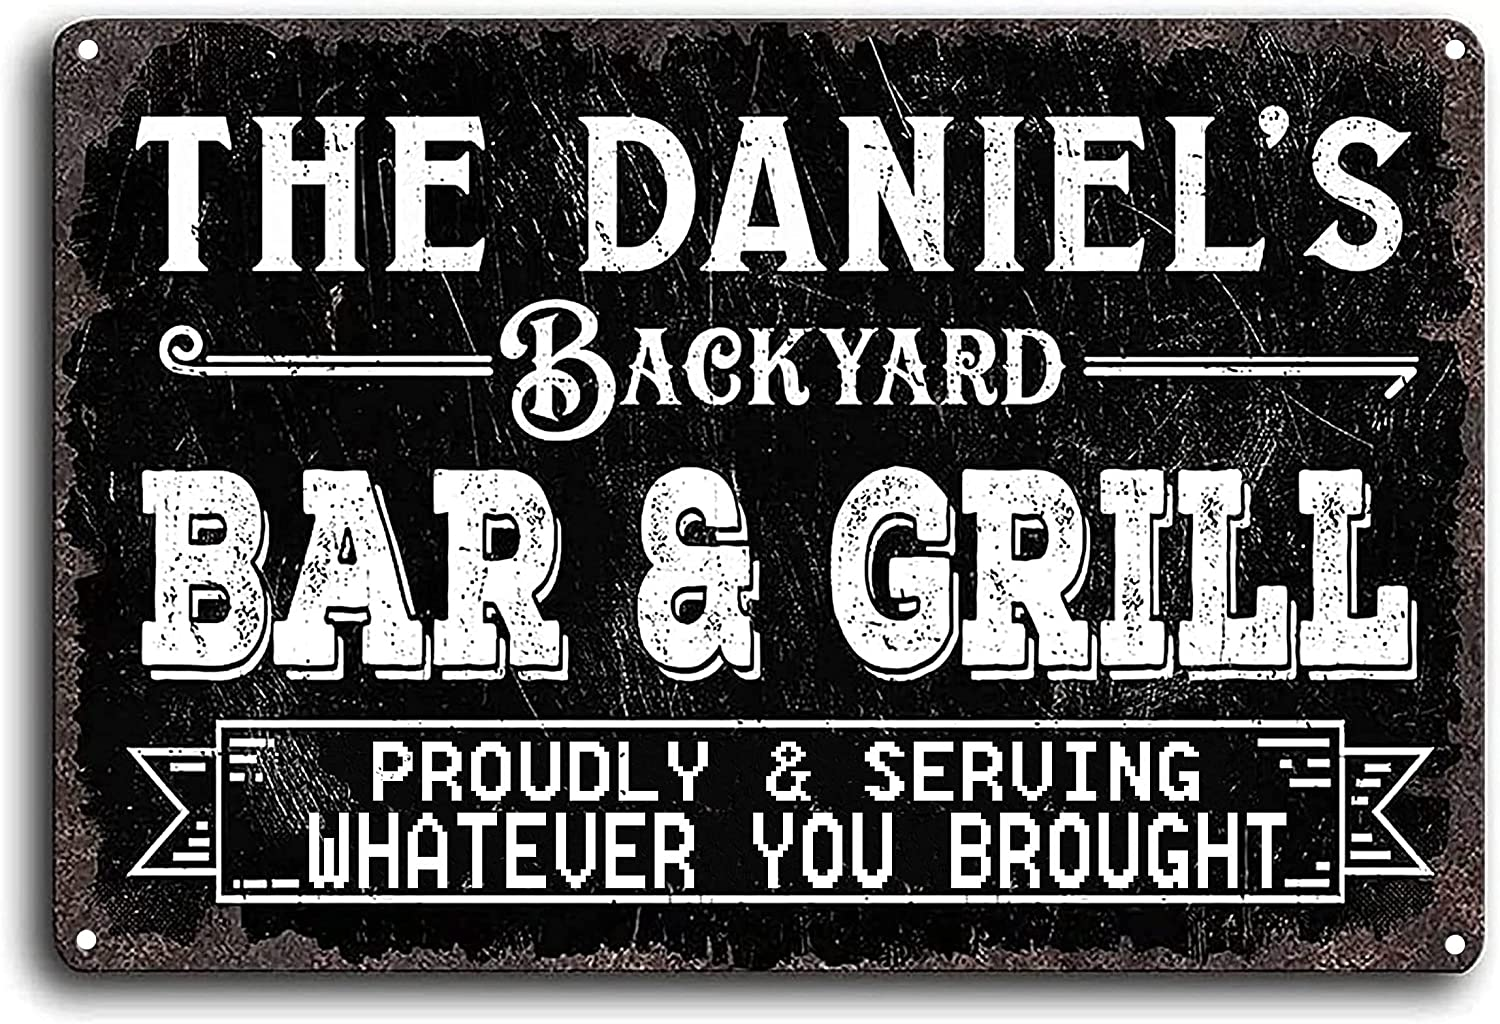 ICRAEZY Personalized Backyard Bar & Grill Sign Vintage Distressed Look Wall Decor Metal Wooden Home Plaque Gifts Man Cave Signs Vintage Wall Art Decorations